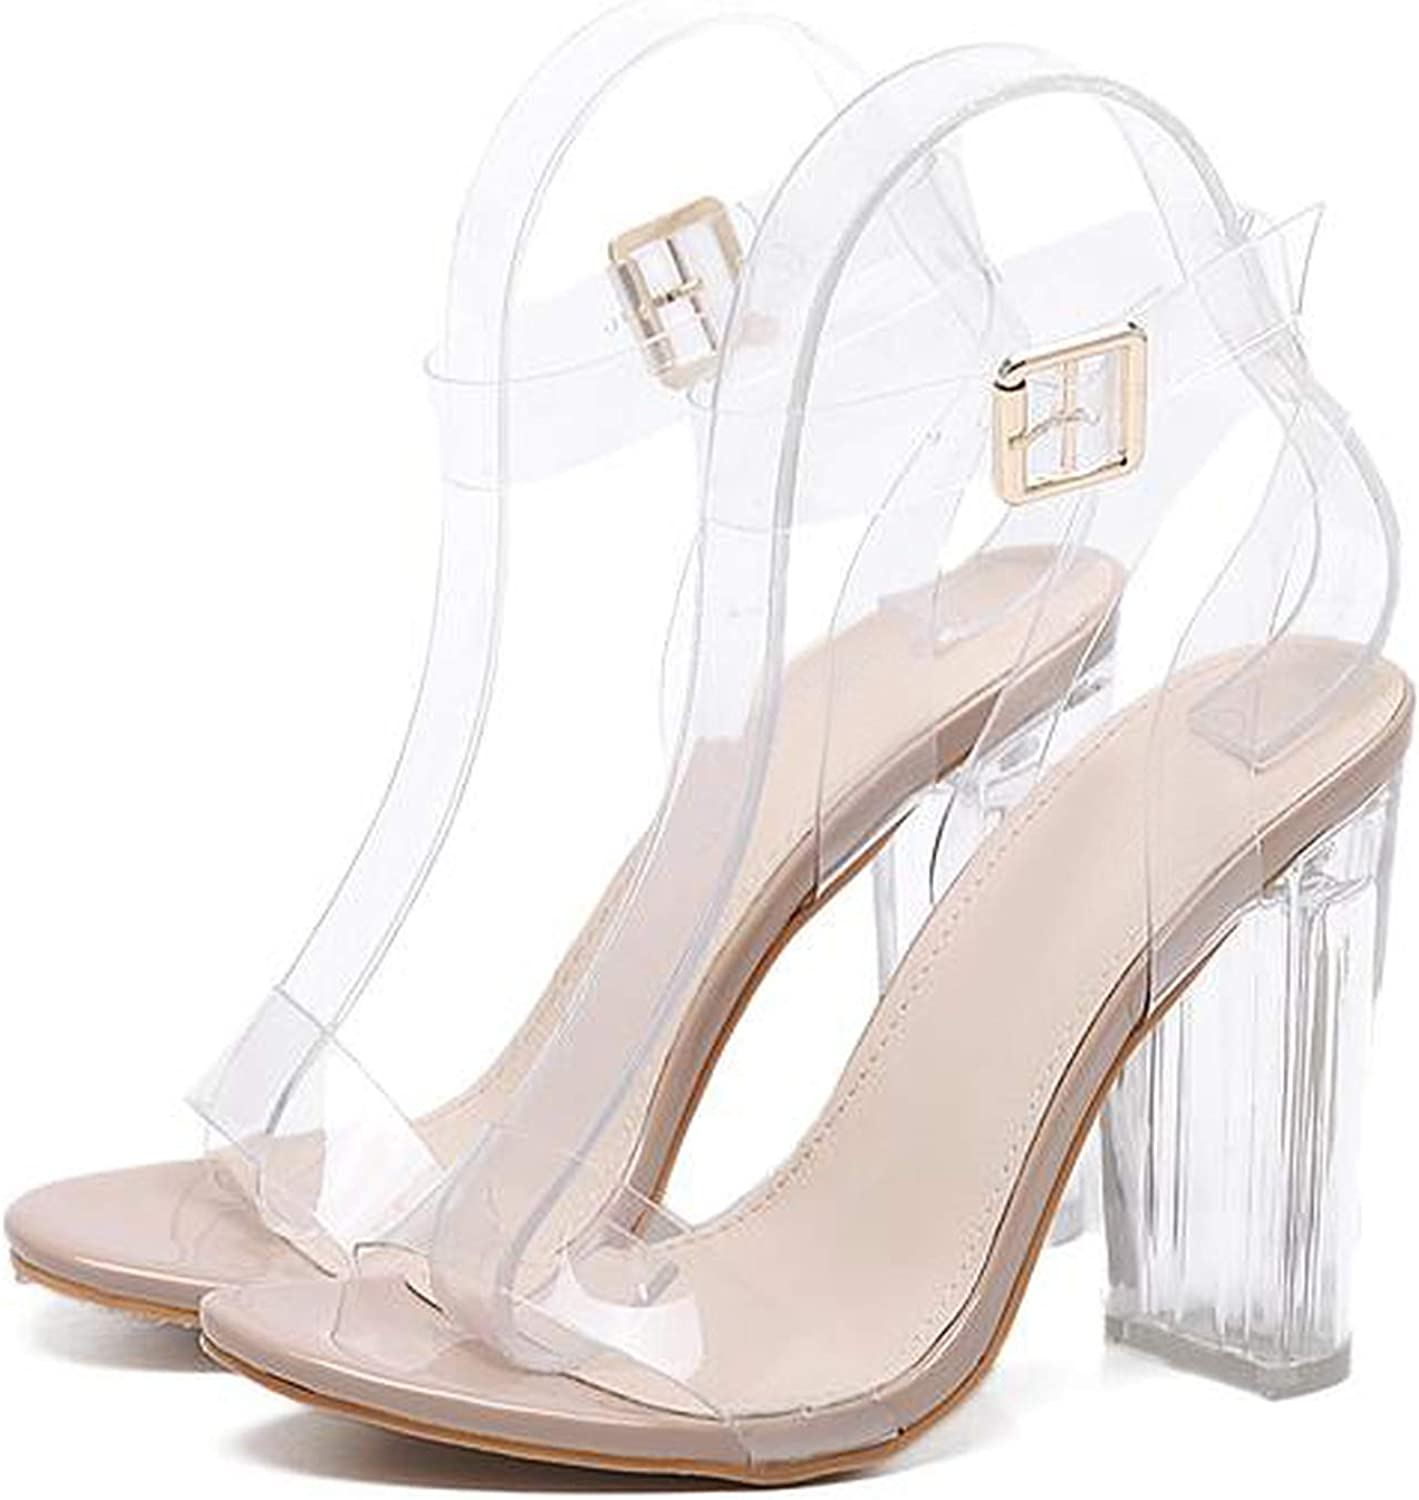 Sensitives 2019 PVC Jelly Sandals Crystal Leopard Open Toed High Heels Women Transparent Heel Sandals Slippers